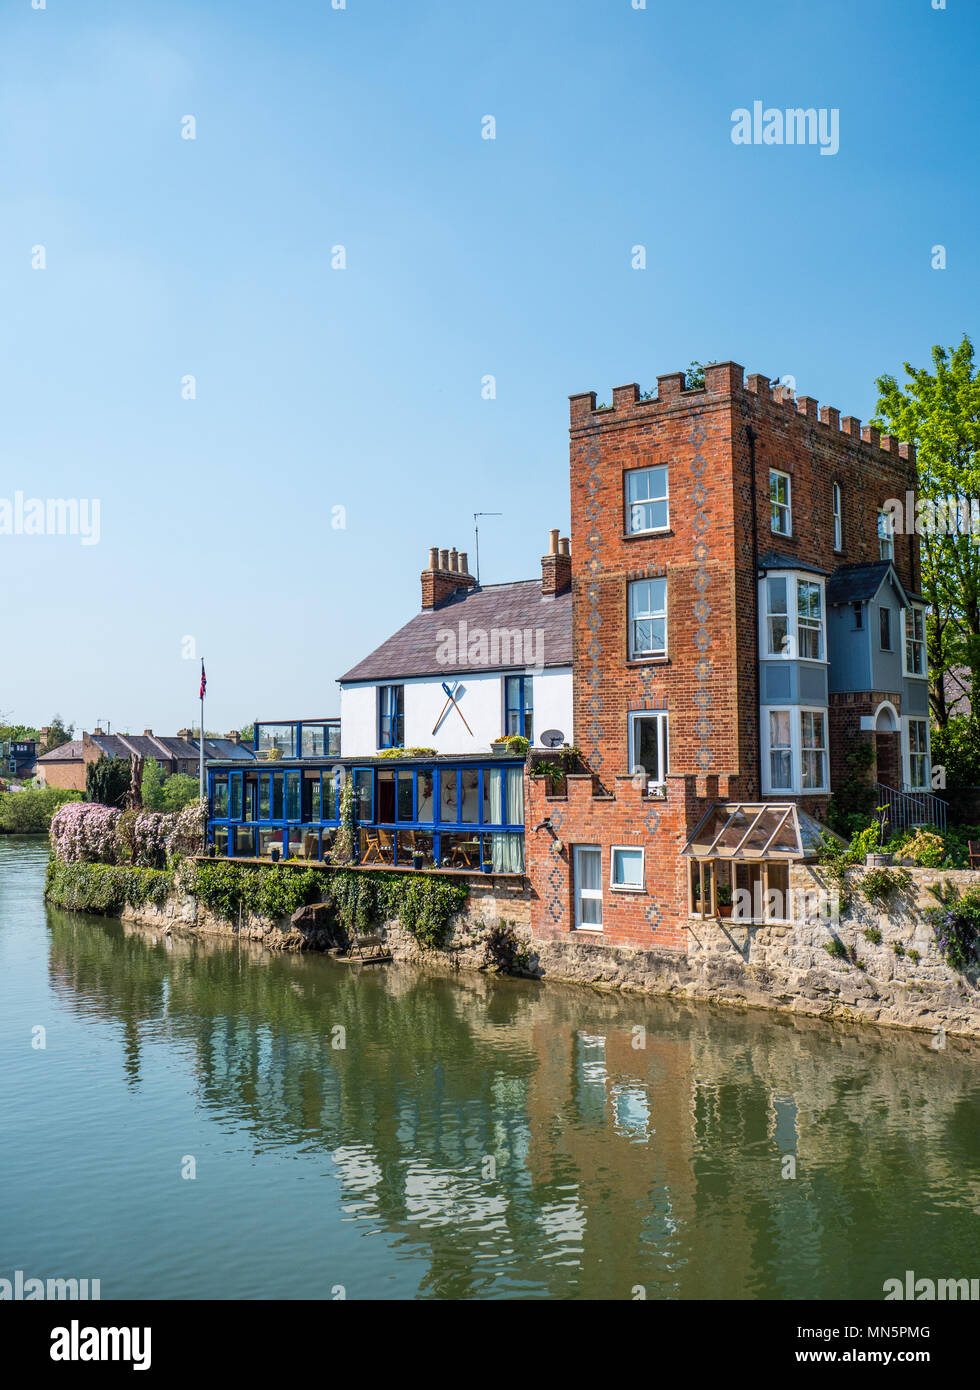 Houses on River Thames nr Folly Bridge, Oxford, Oxfordshire, England, UK, GB. Stock Photo